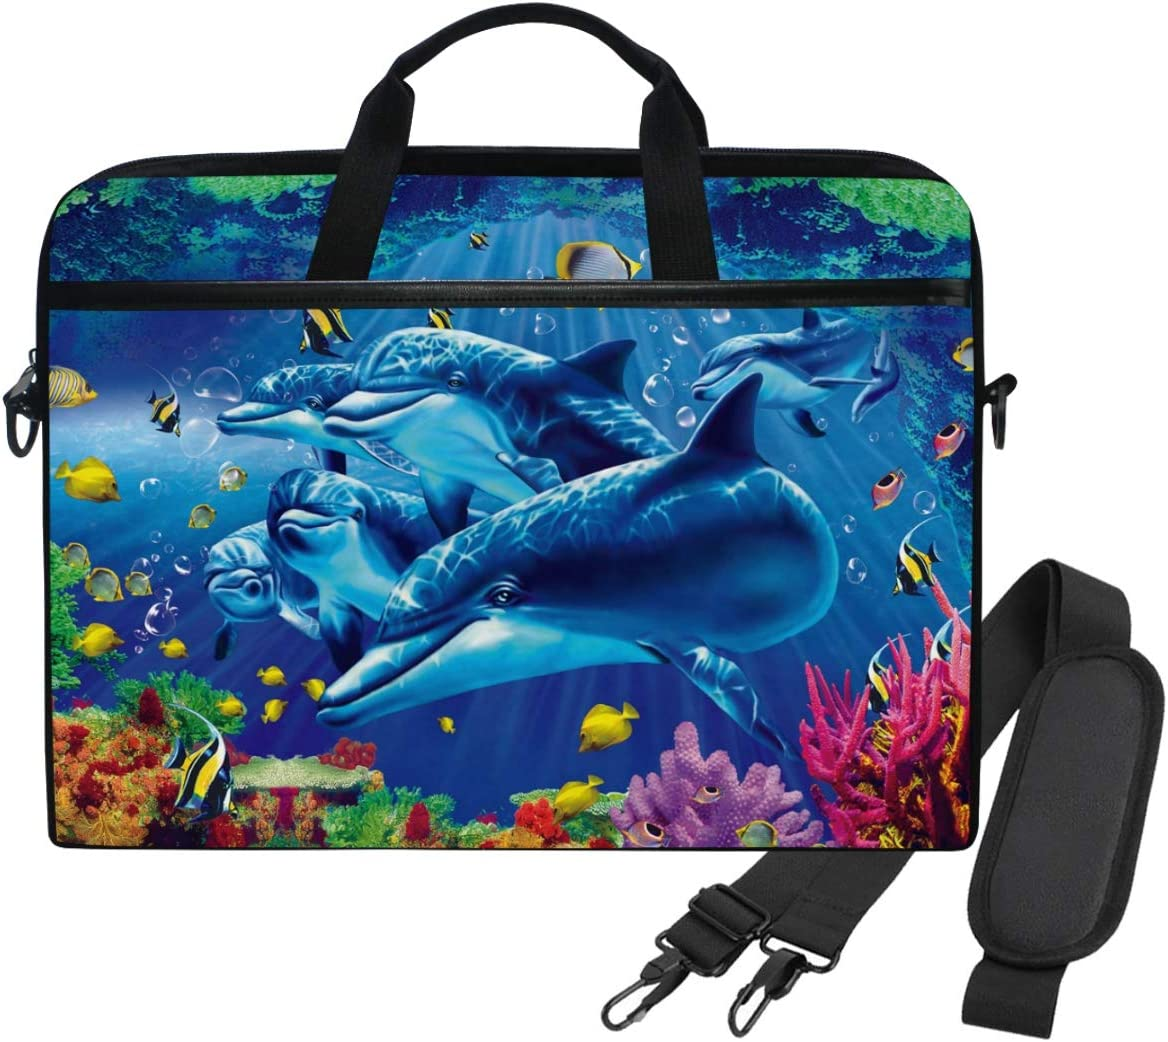 14 Inch Laptop Case Ocean Fish Dolphin Laptop Shoulder Bag Carrying Case with Strap for Women and Men